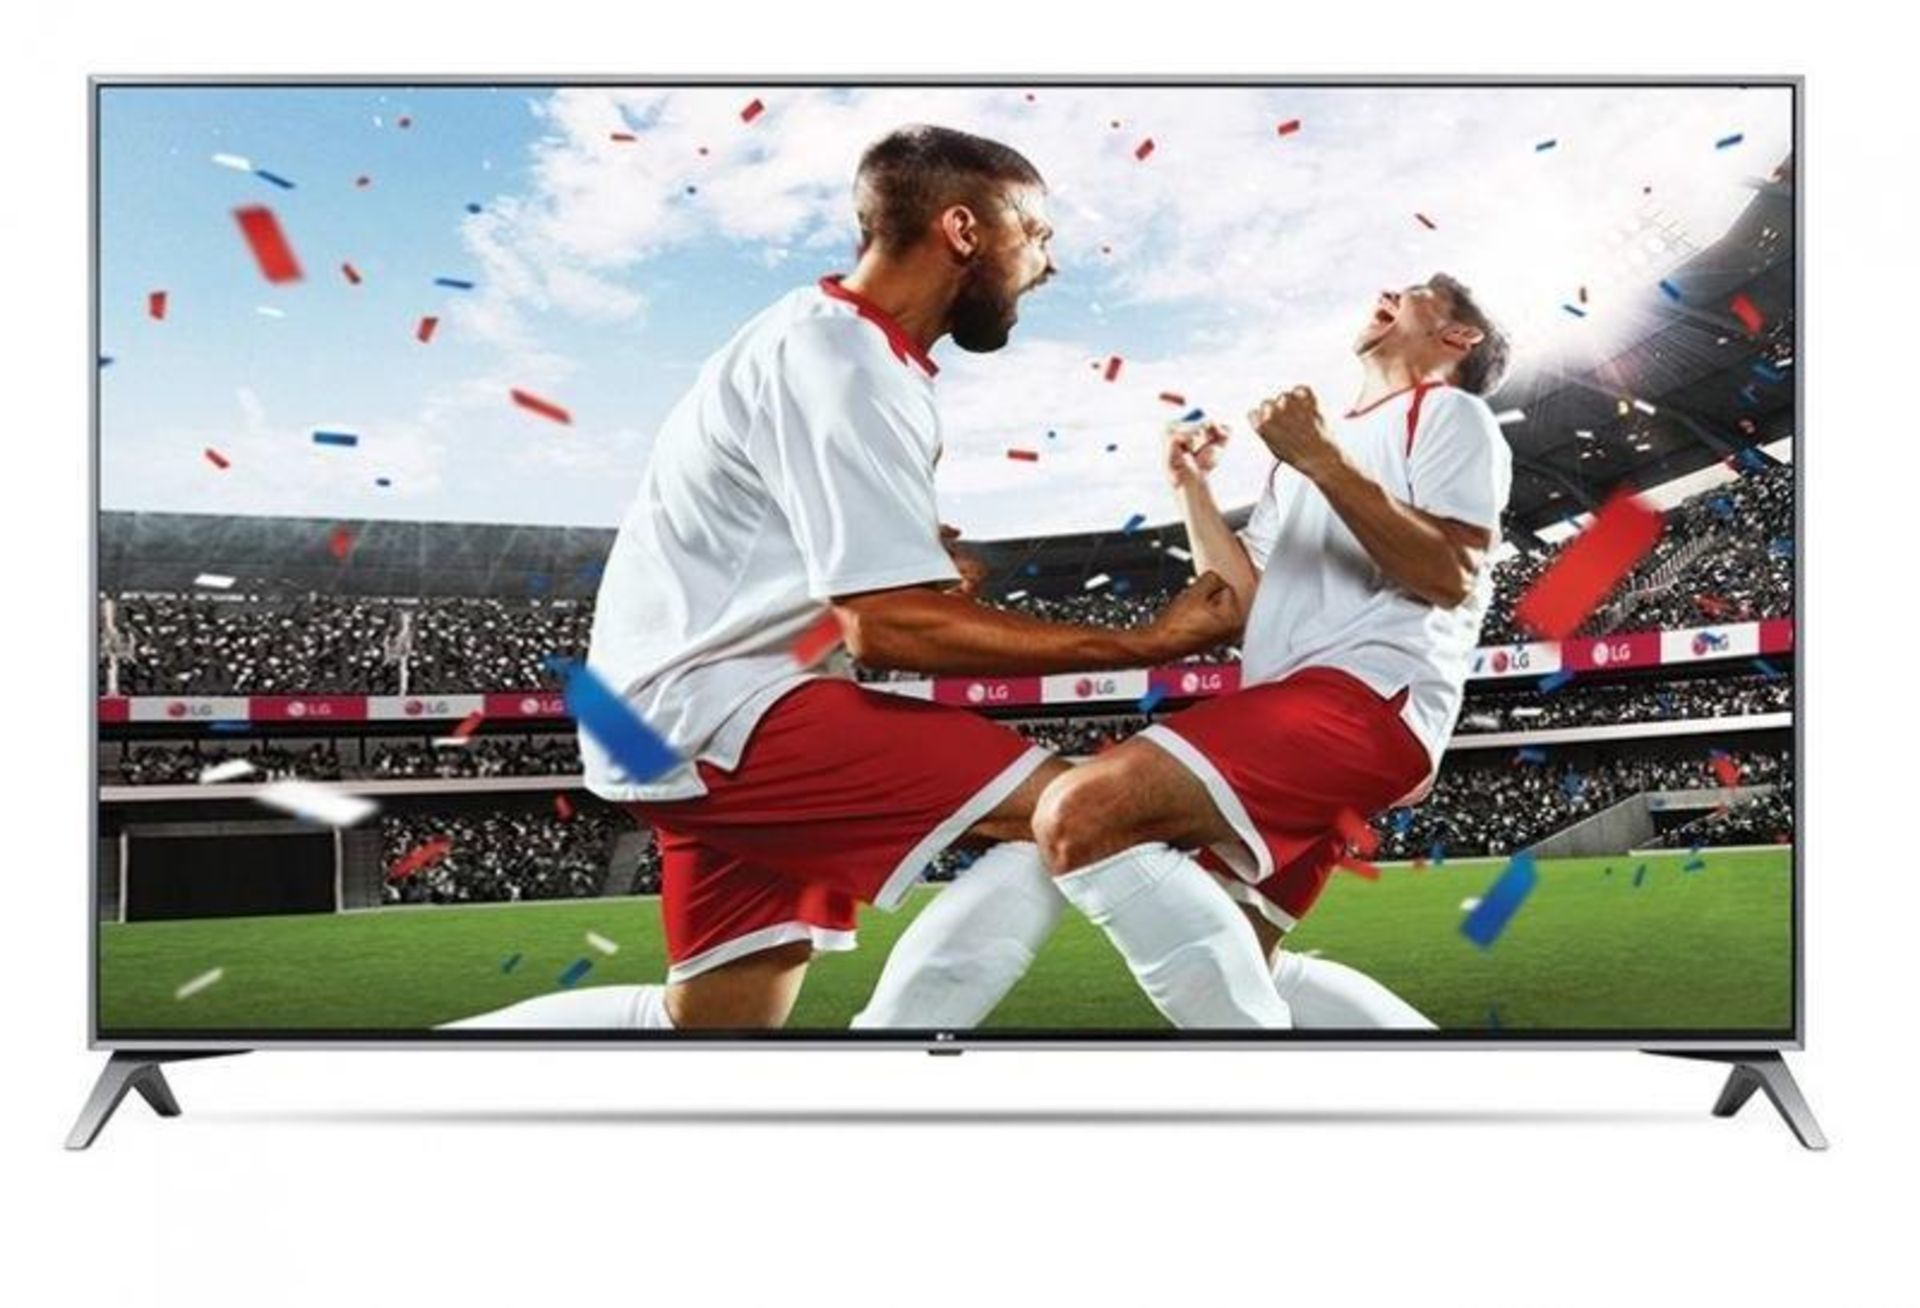 Lotto 30017 - V Grade A LG 49 Inch ACTIVE HDR 4K SUPER ULTRA HD NANO LED SMART TV WITH FREEVIEW HD & WEBOS 3.5 &